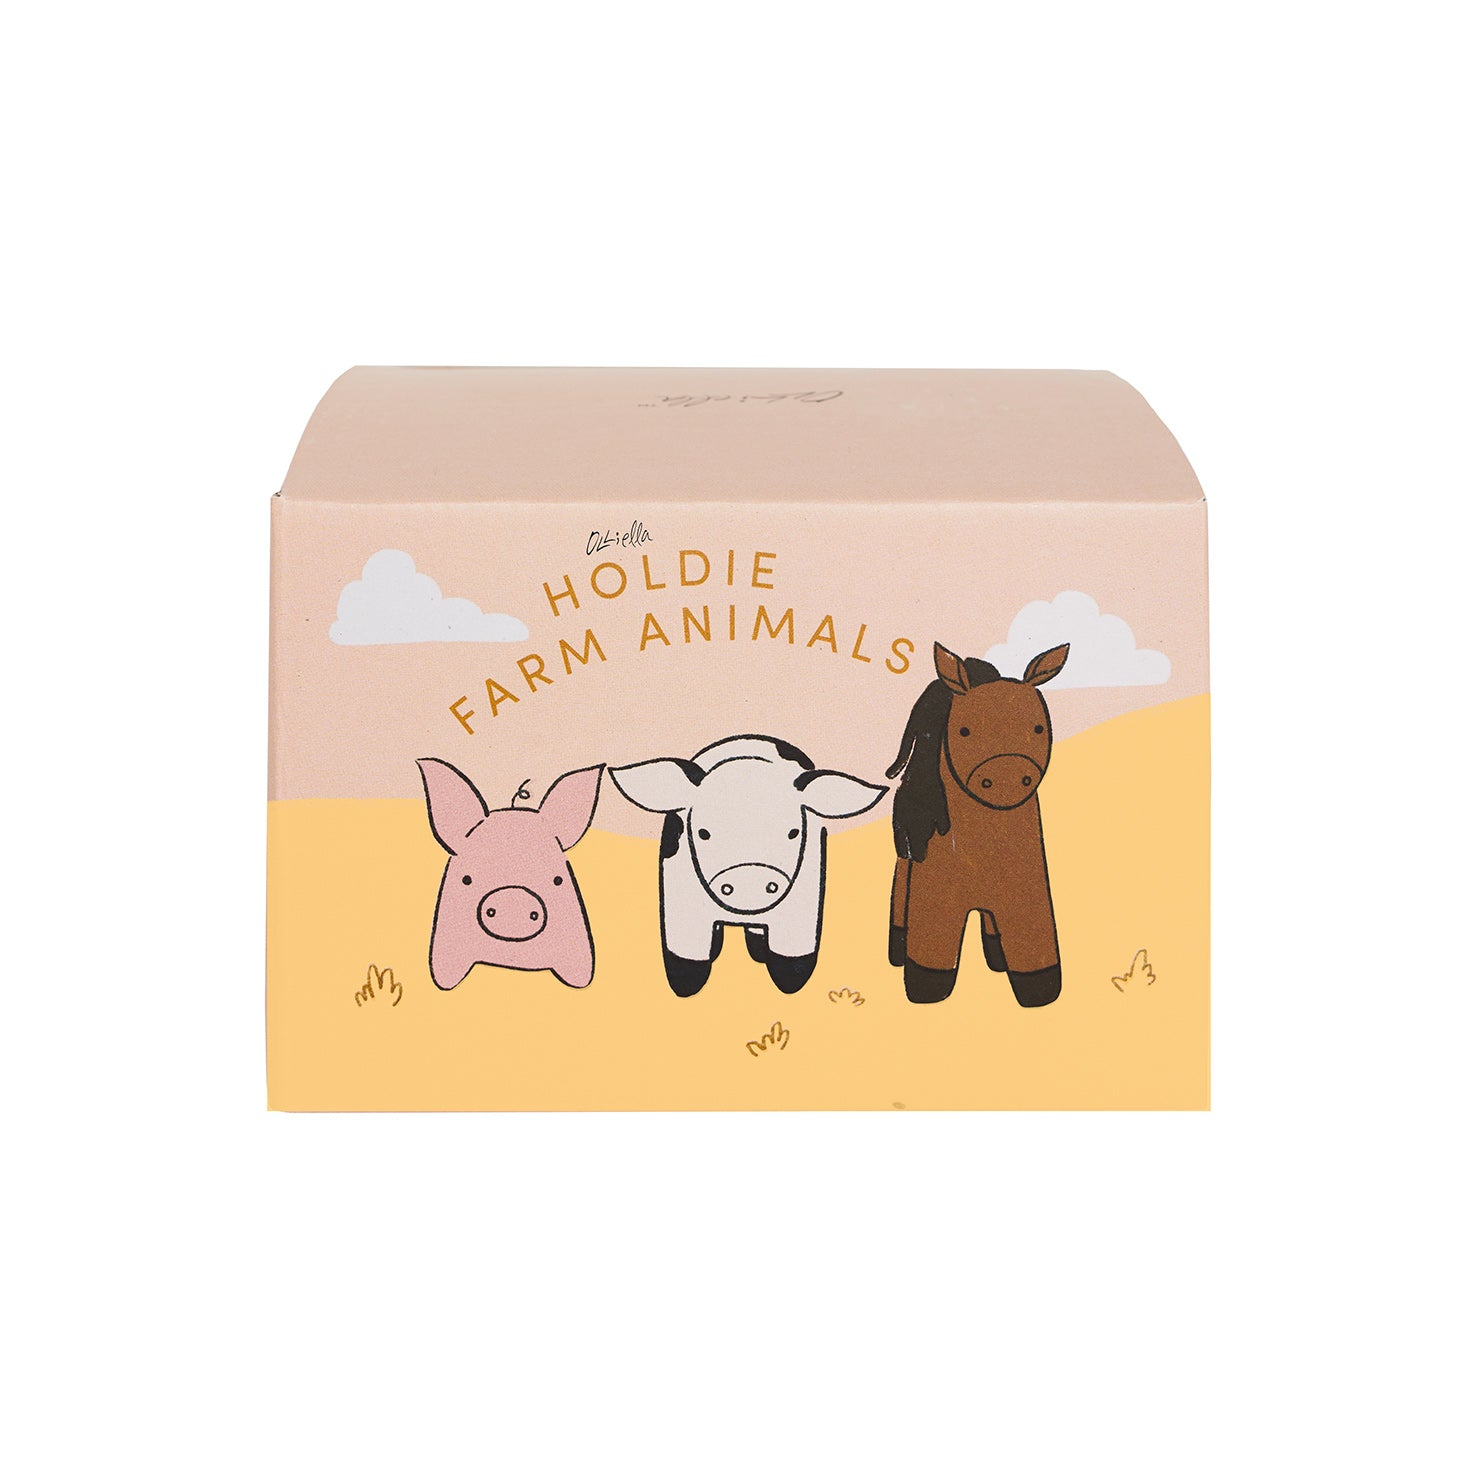 Olli Ella Box Holdie Farm Animals